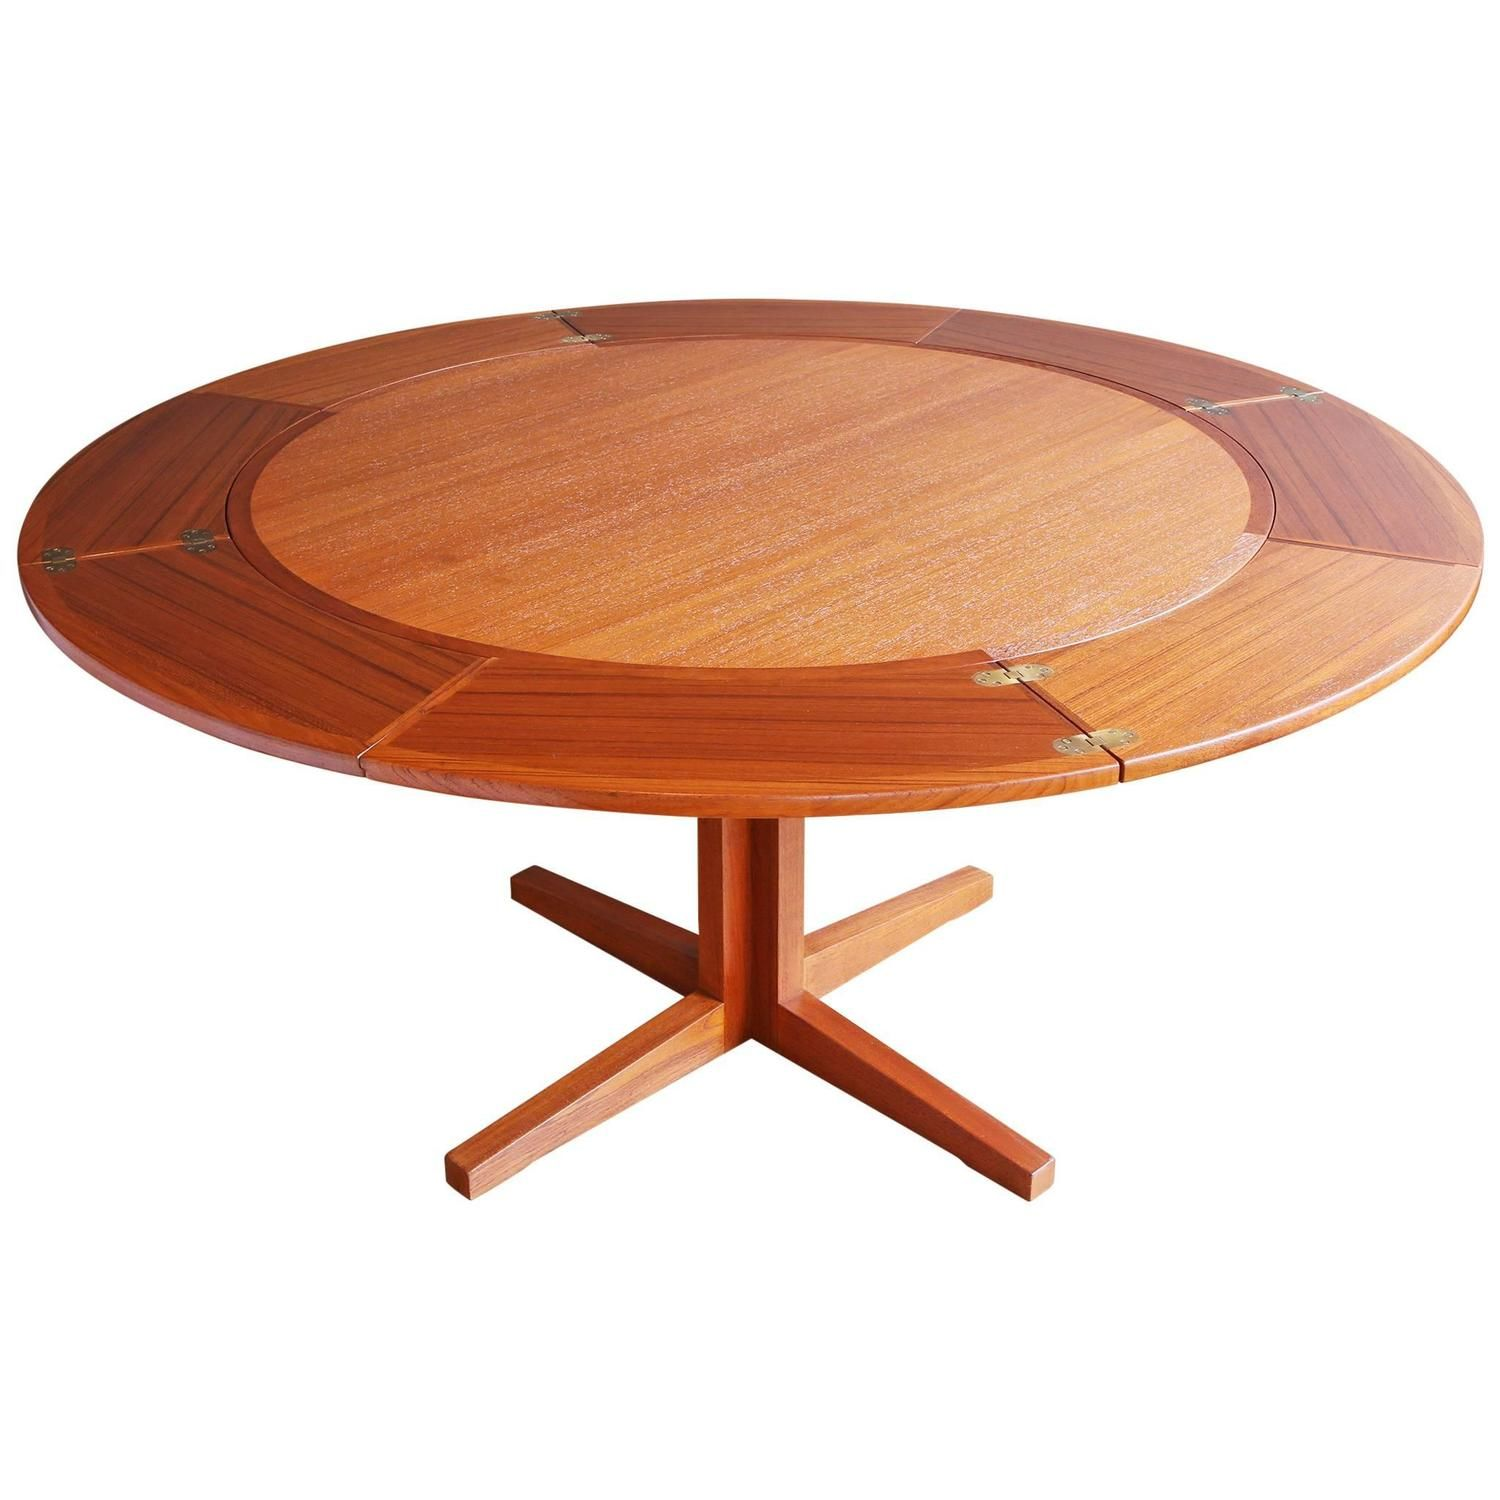 Expandable Danish Teak Lotus Dining Table By Dyrlund 1stdibs Com Danish Dining Table Dining Table Dining Room Table